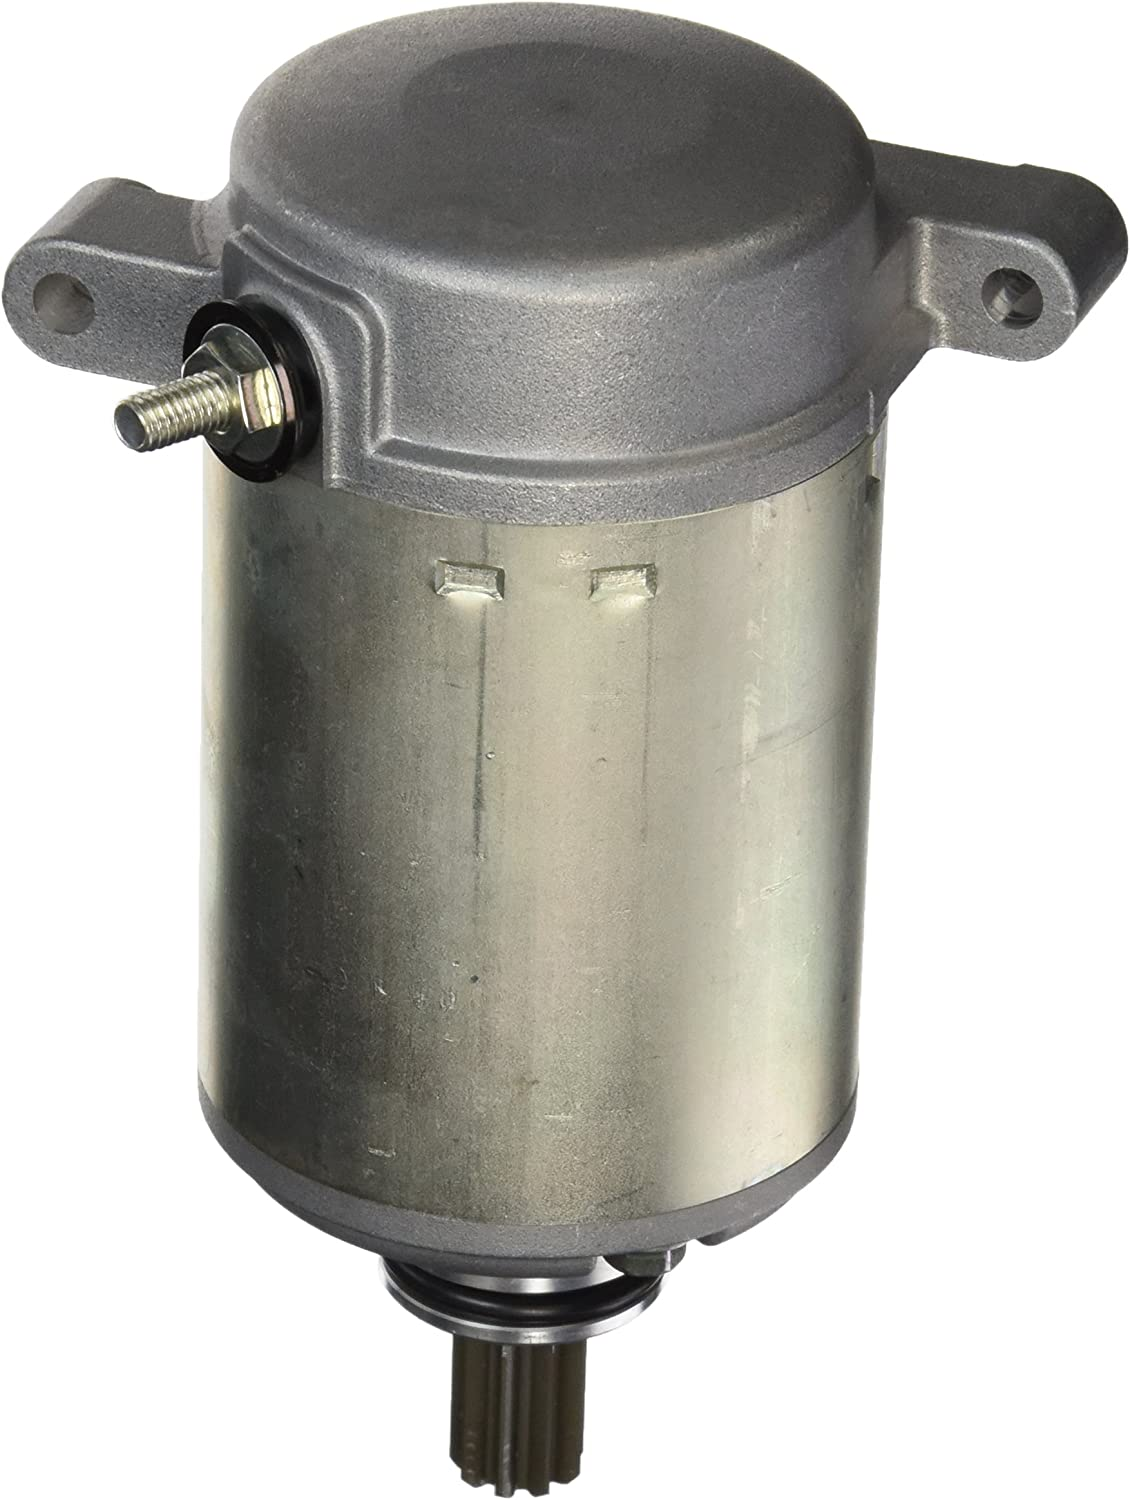 Yamaha 4KB818900000 Starting Motor Assembly New Free Shipping Cheap Bargain Gift products world's highest quality popular